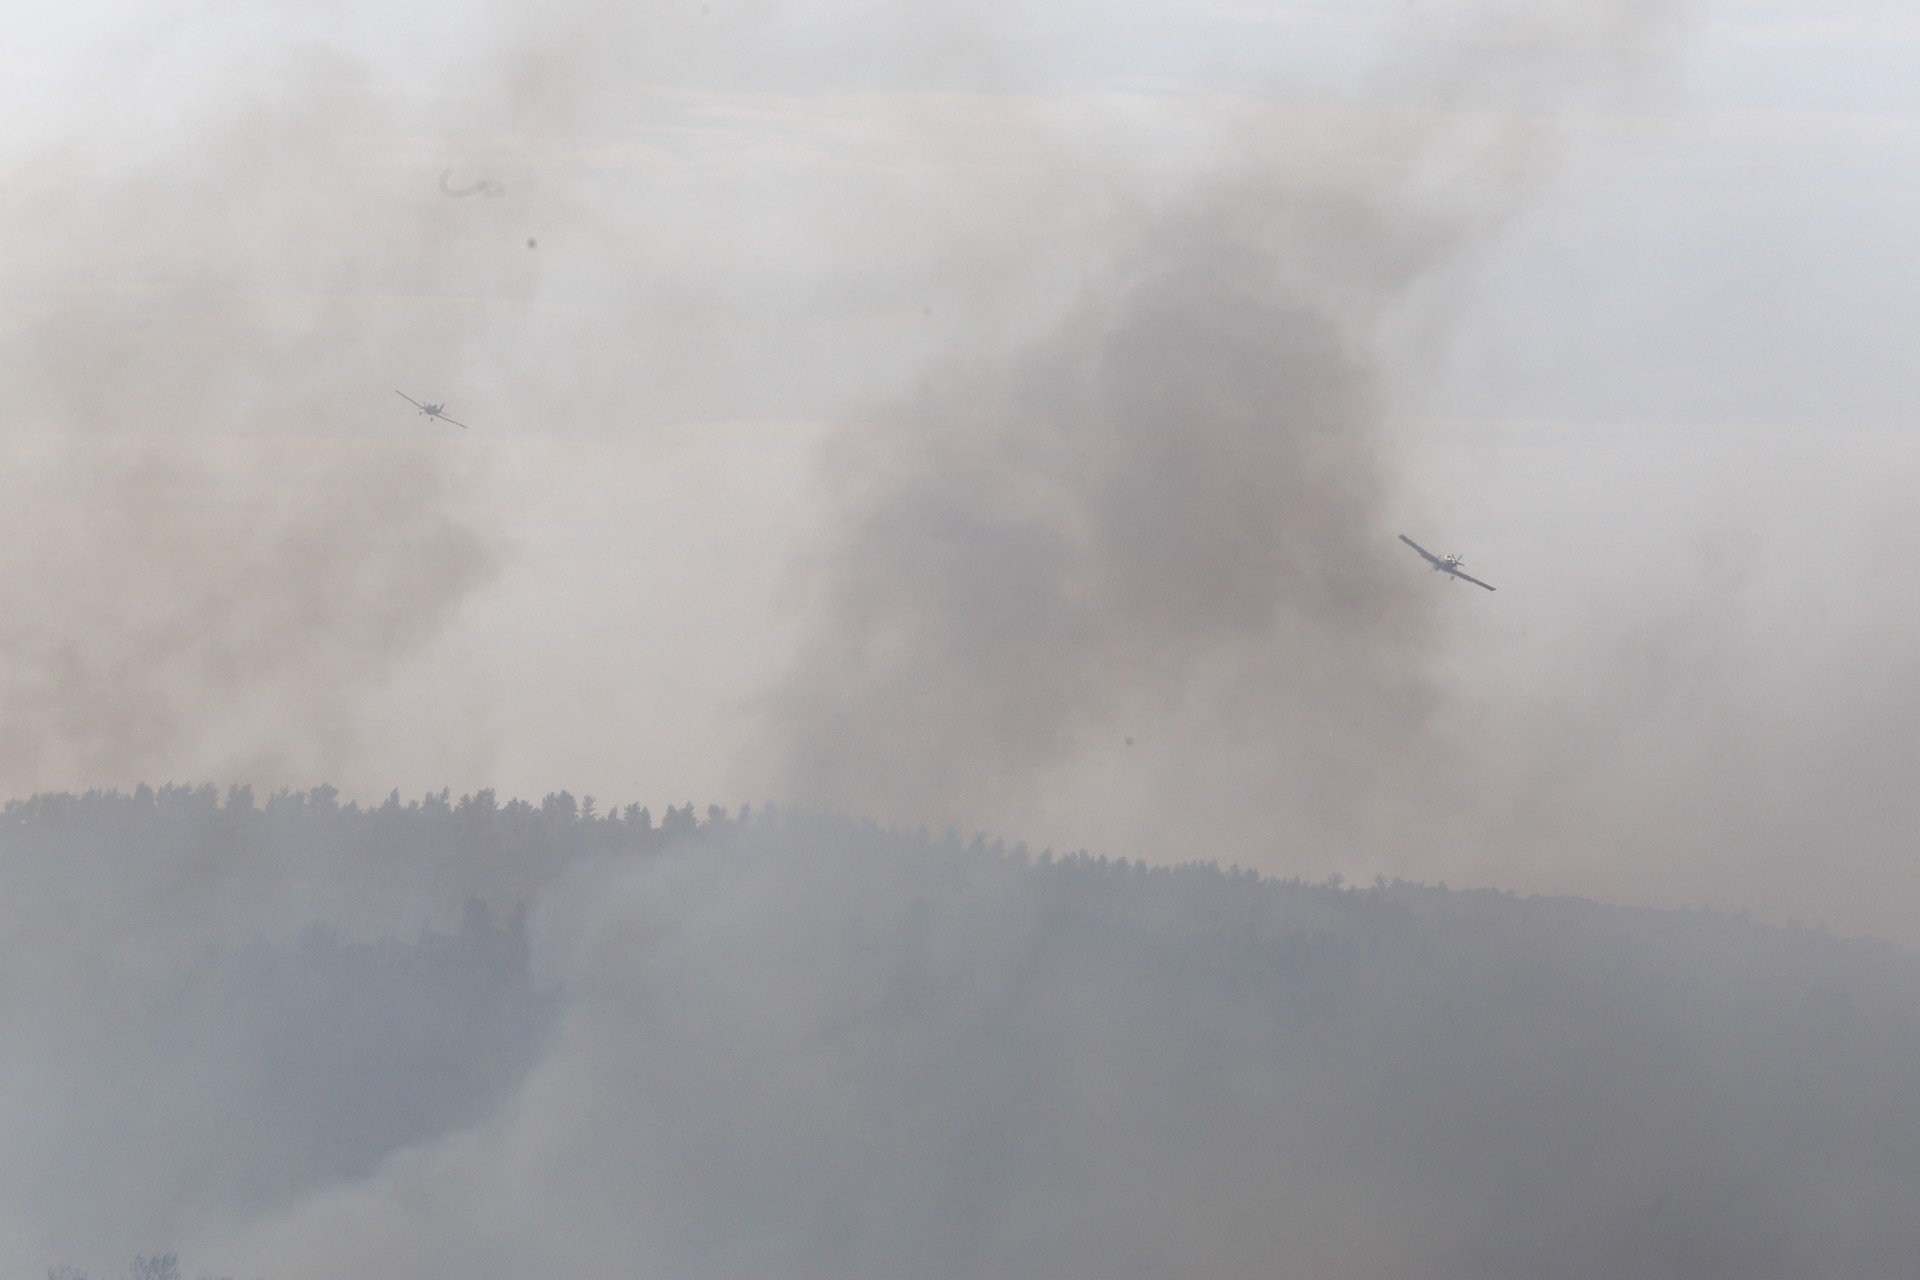 Israel enlists help from allies as fires rage across country